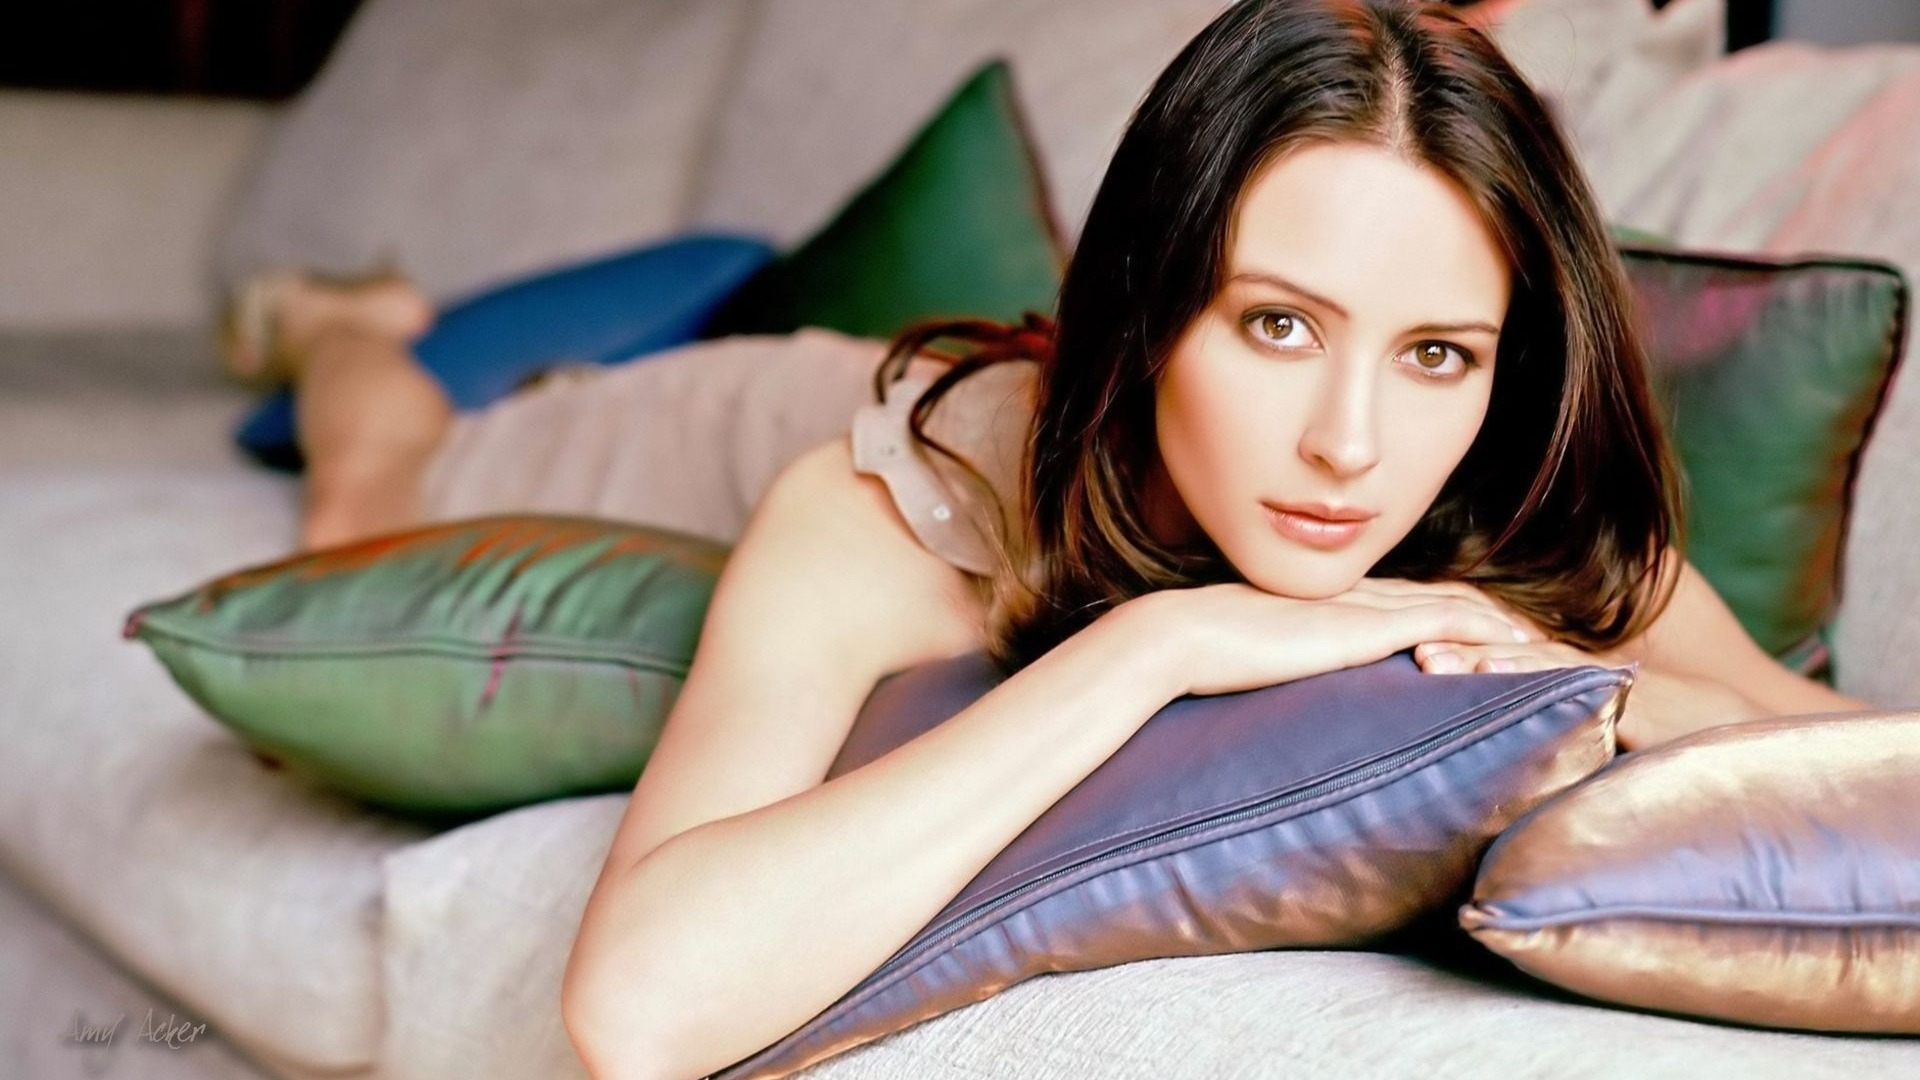 Amy Acker #010 - 1920x1080 Wallpapers Pictures Photos Images